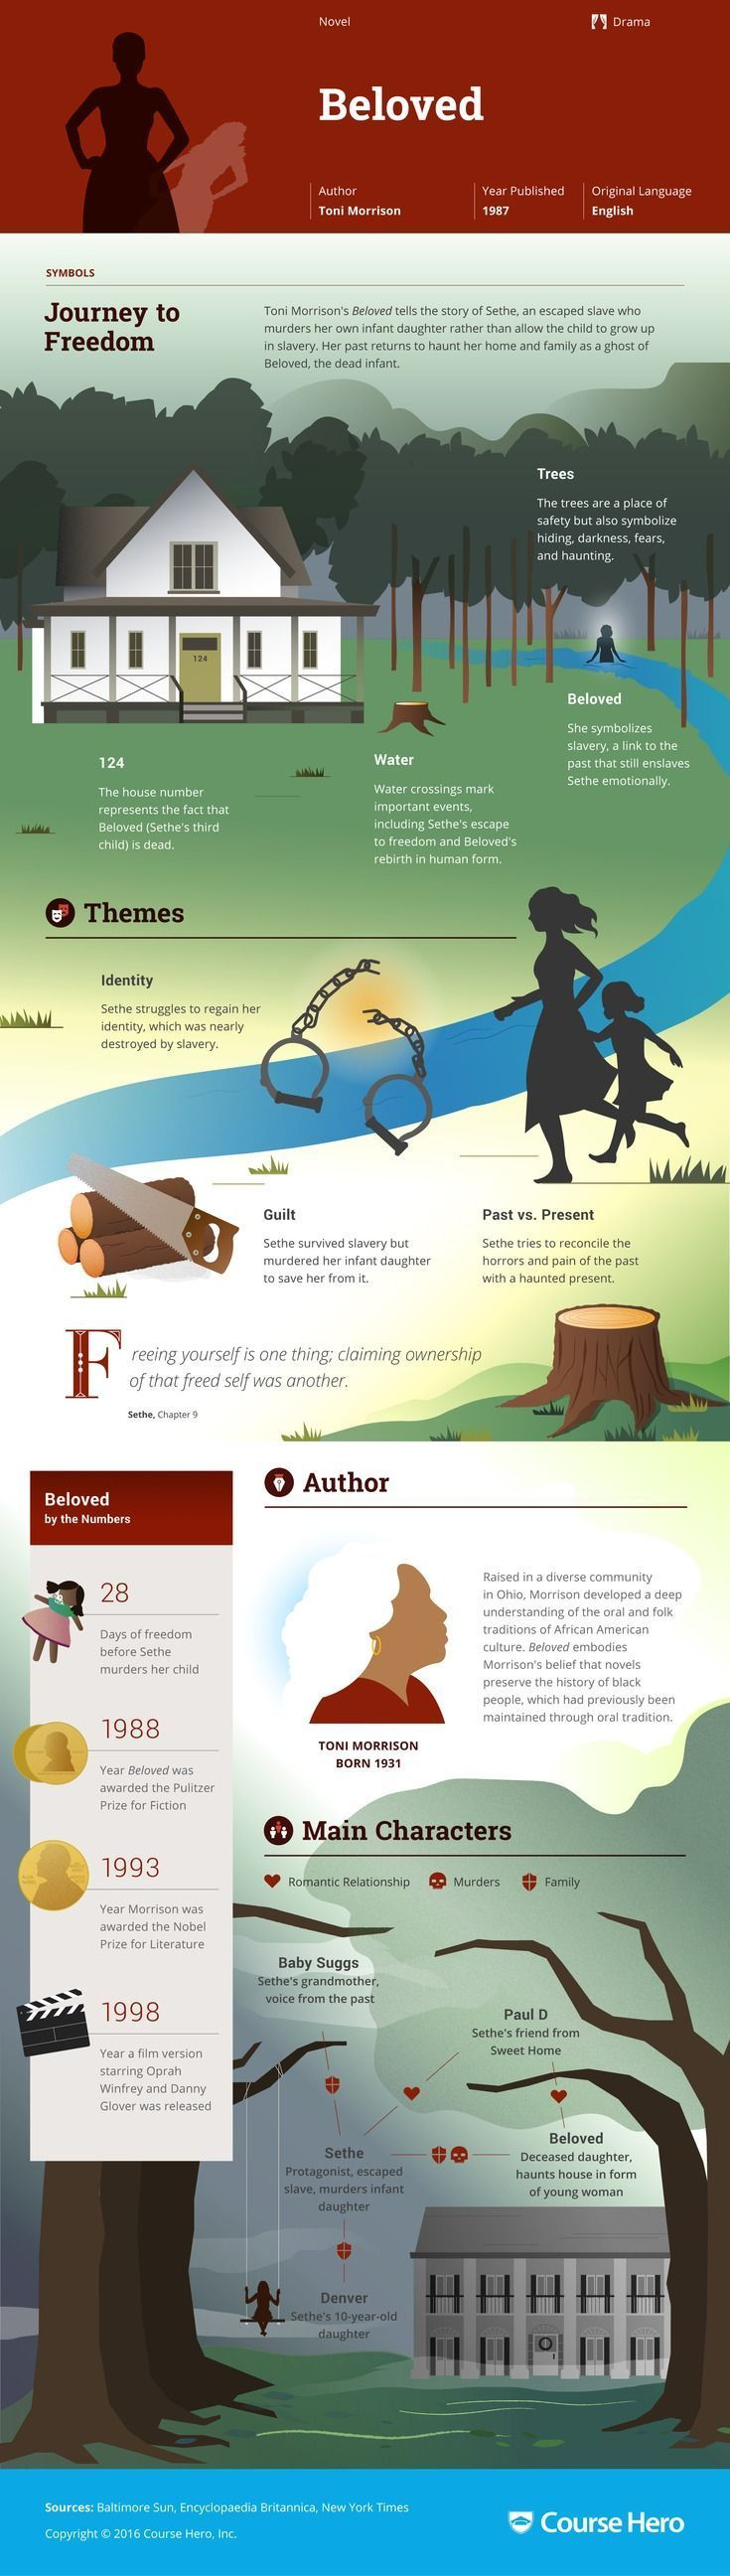 best ideas about beloved toni morrison novels this beloved infographic from course hero is as awesome as it is helpful